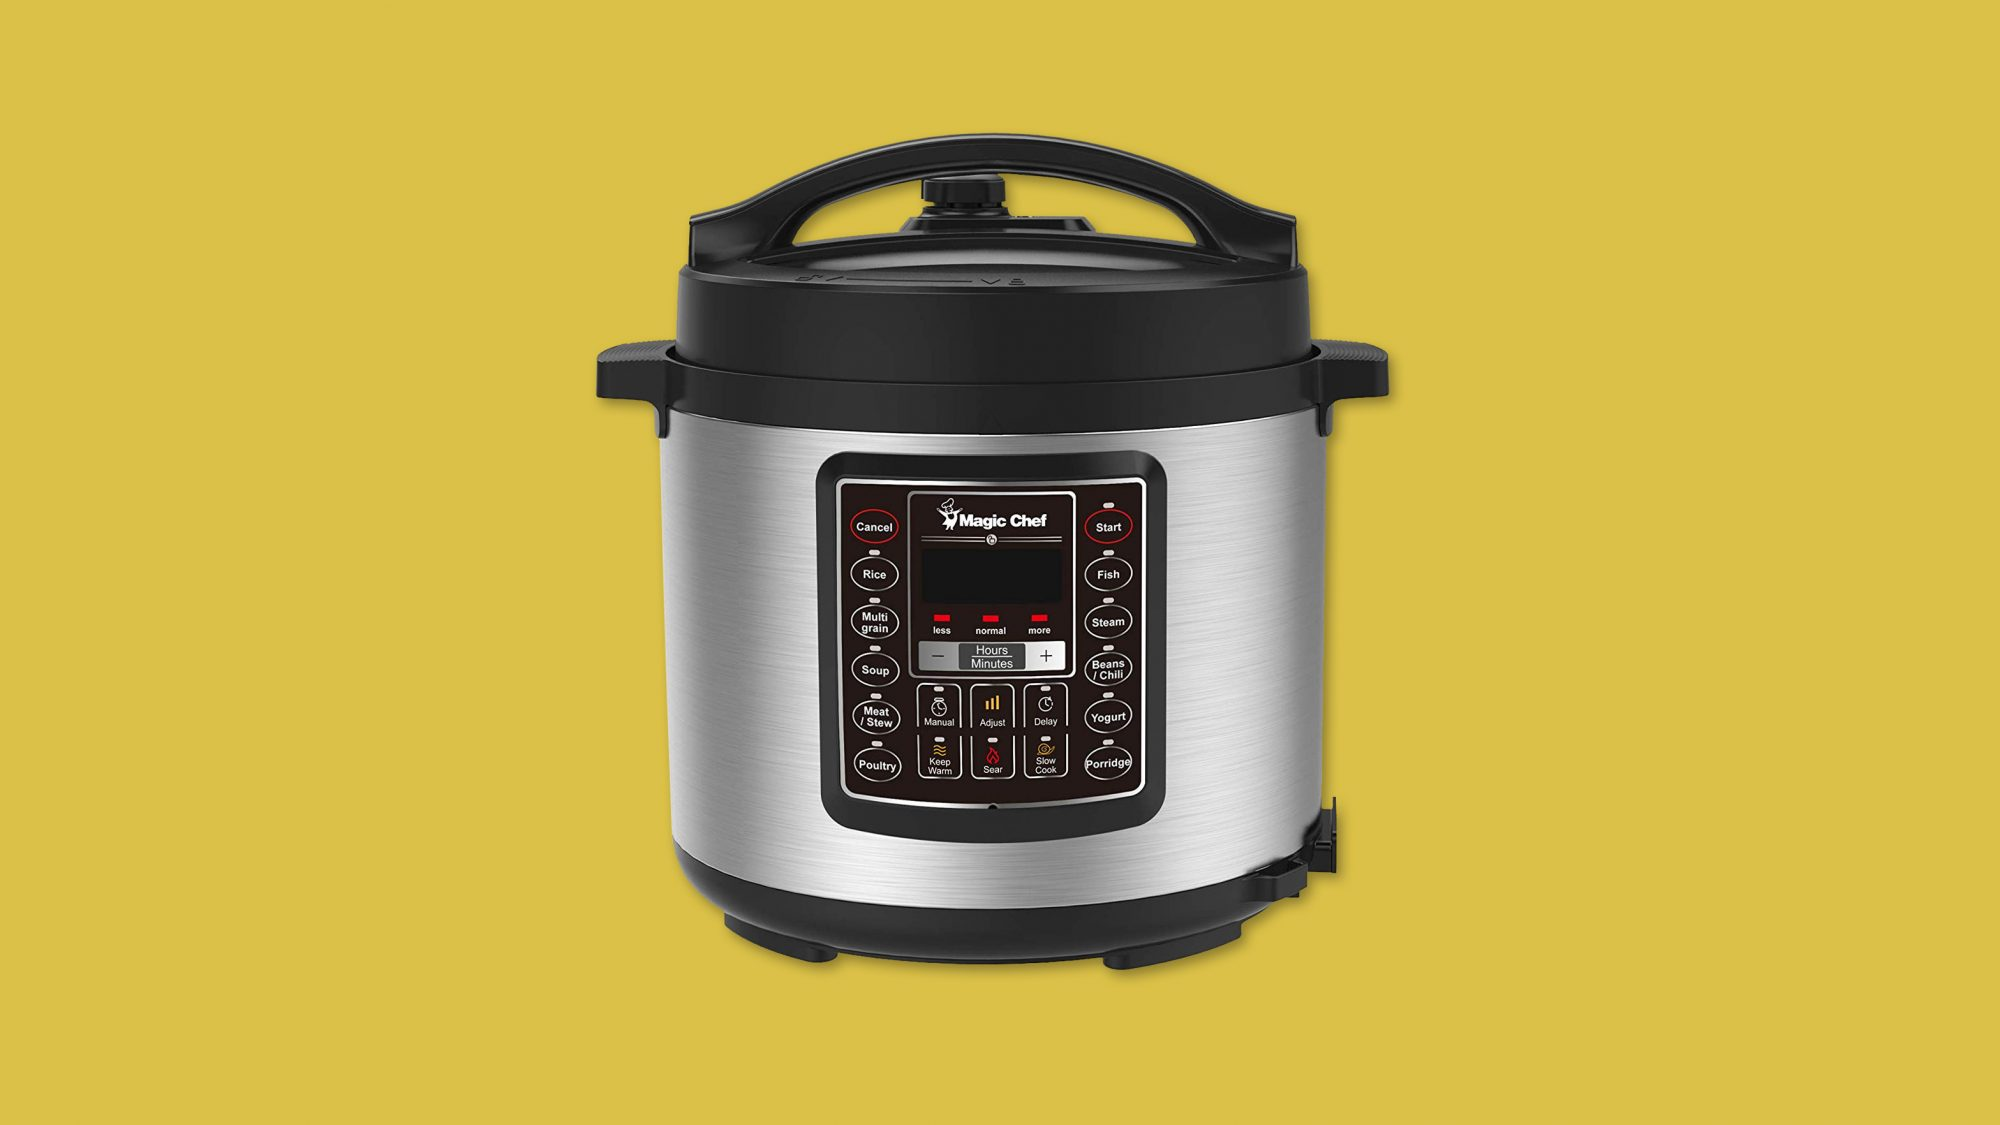 Magic Chef 6 Qt. All-In-One Multicooker